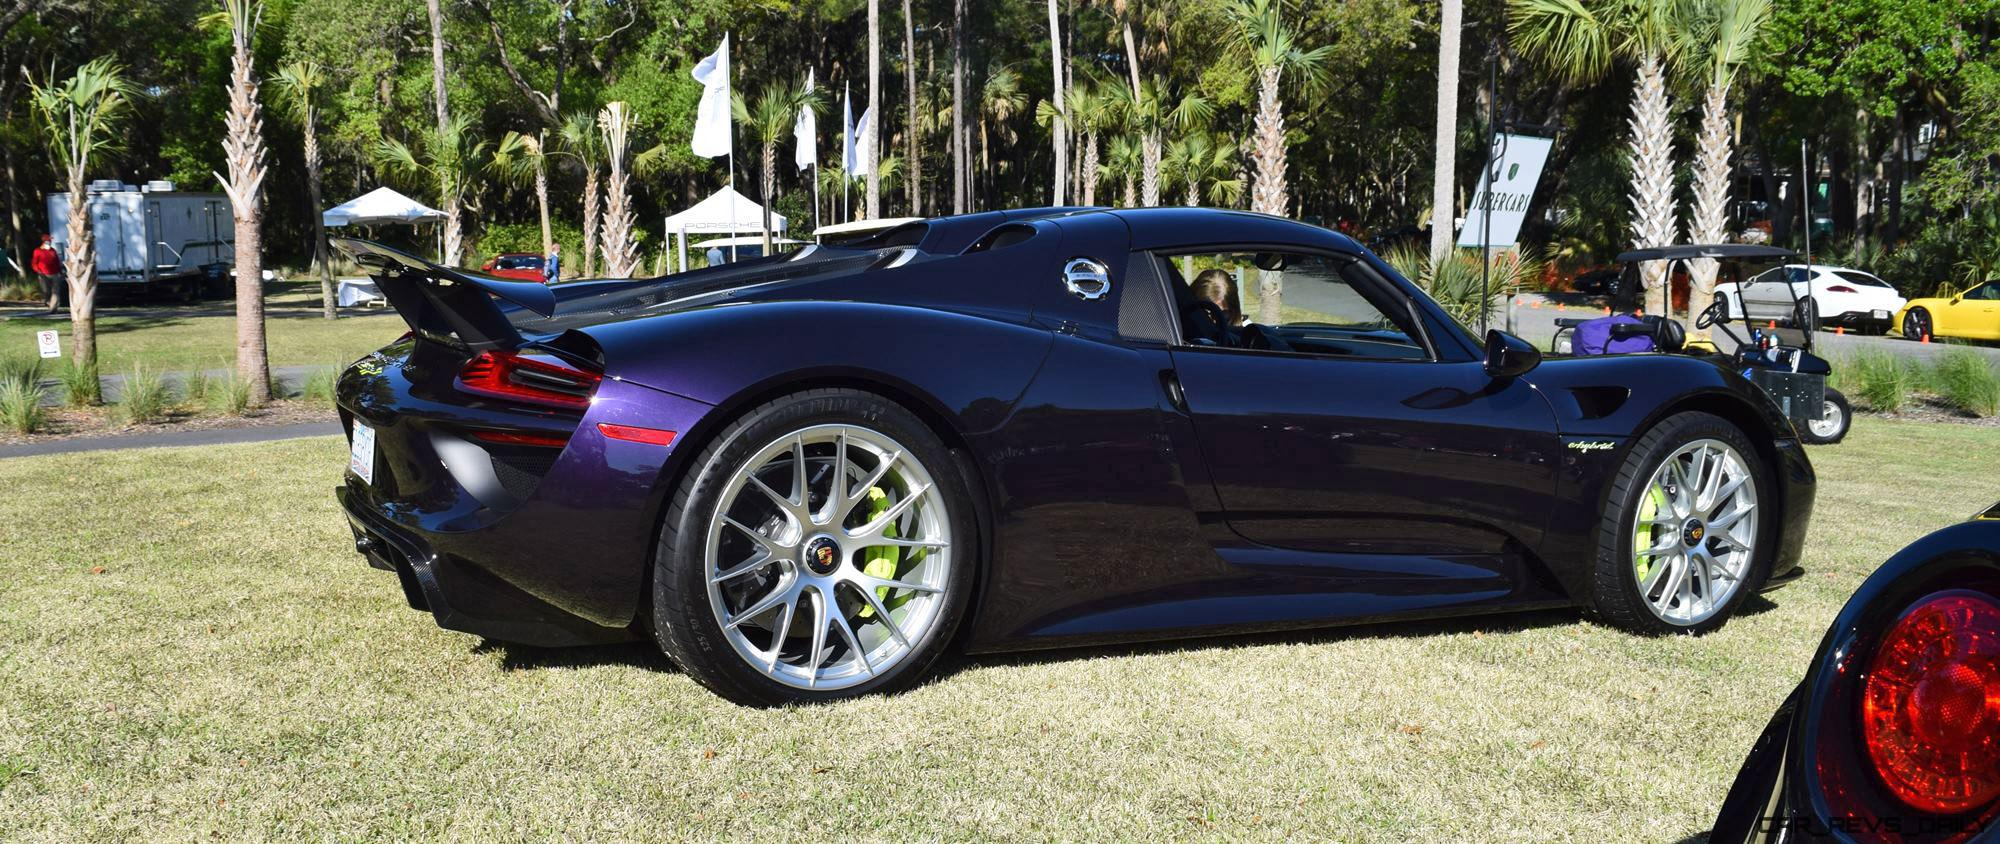 kiawah 2016 highlights 2015 porsche 918 spyder viola black